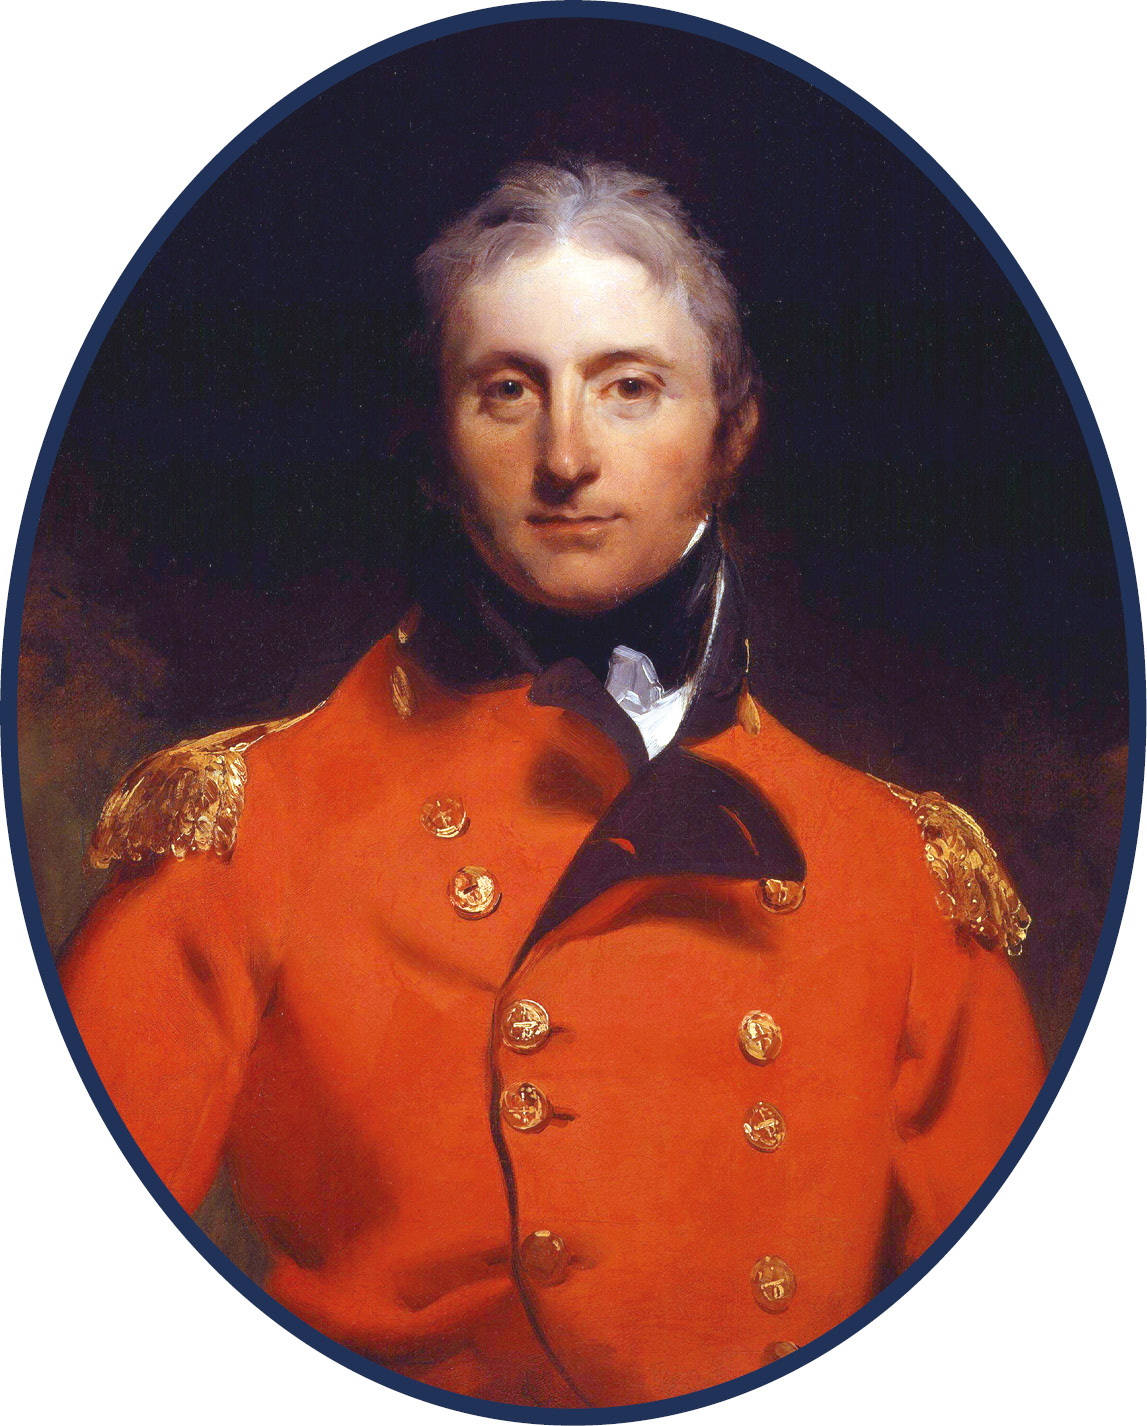 INSET Although remembered mainly as an organiser of armies and a tactical theorist, Moore (1761-1809) proved himself on the battlefield at Corunna.